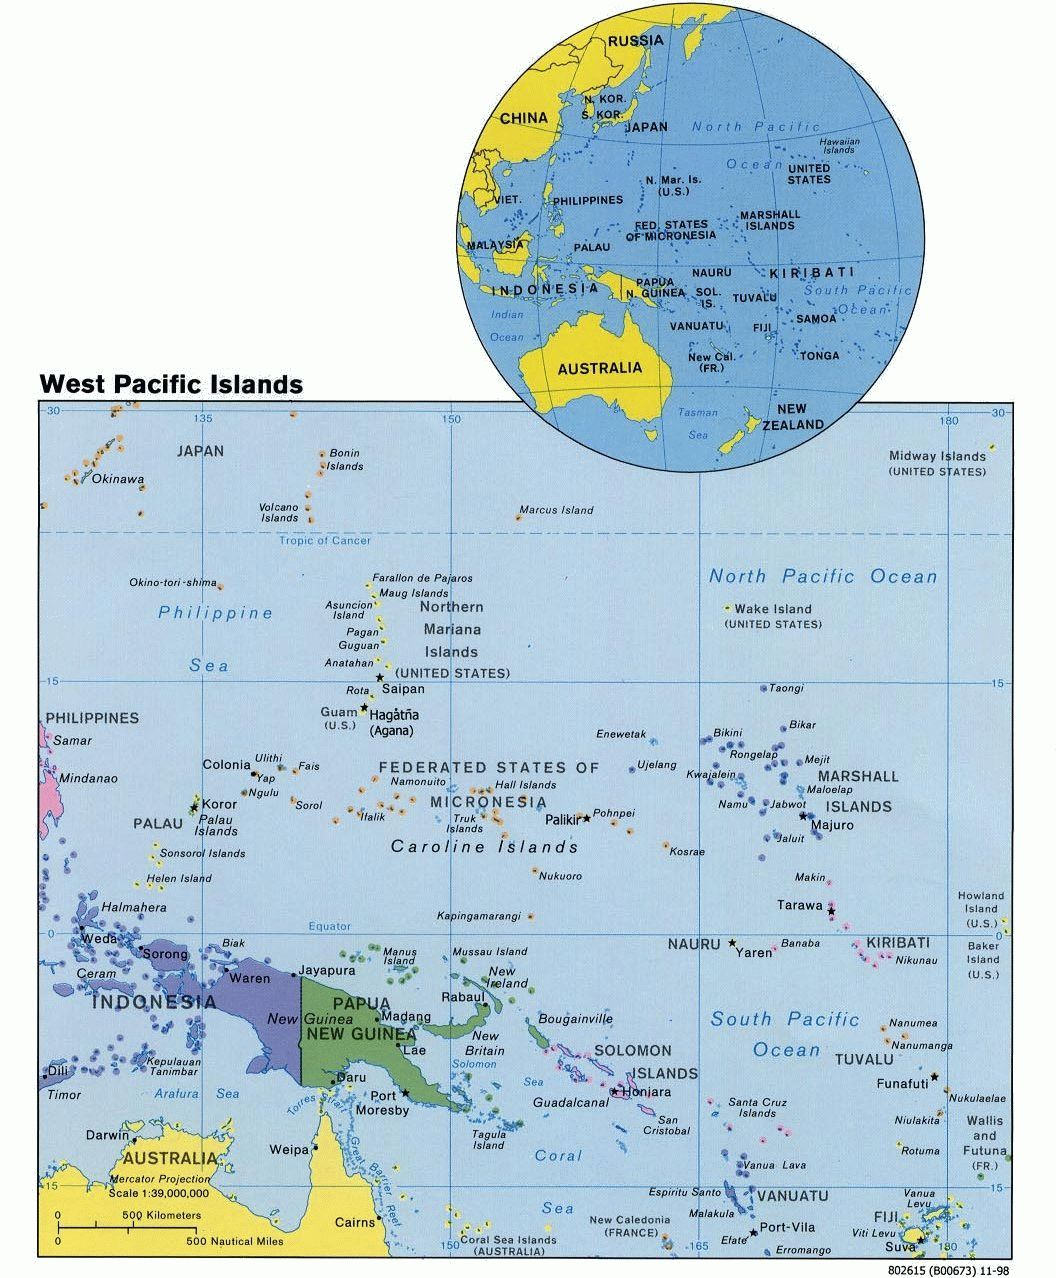 Map of the West Pacific Islands (Political), 1998. Courtesy of, The World